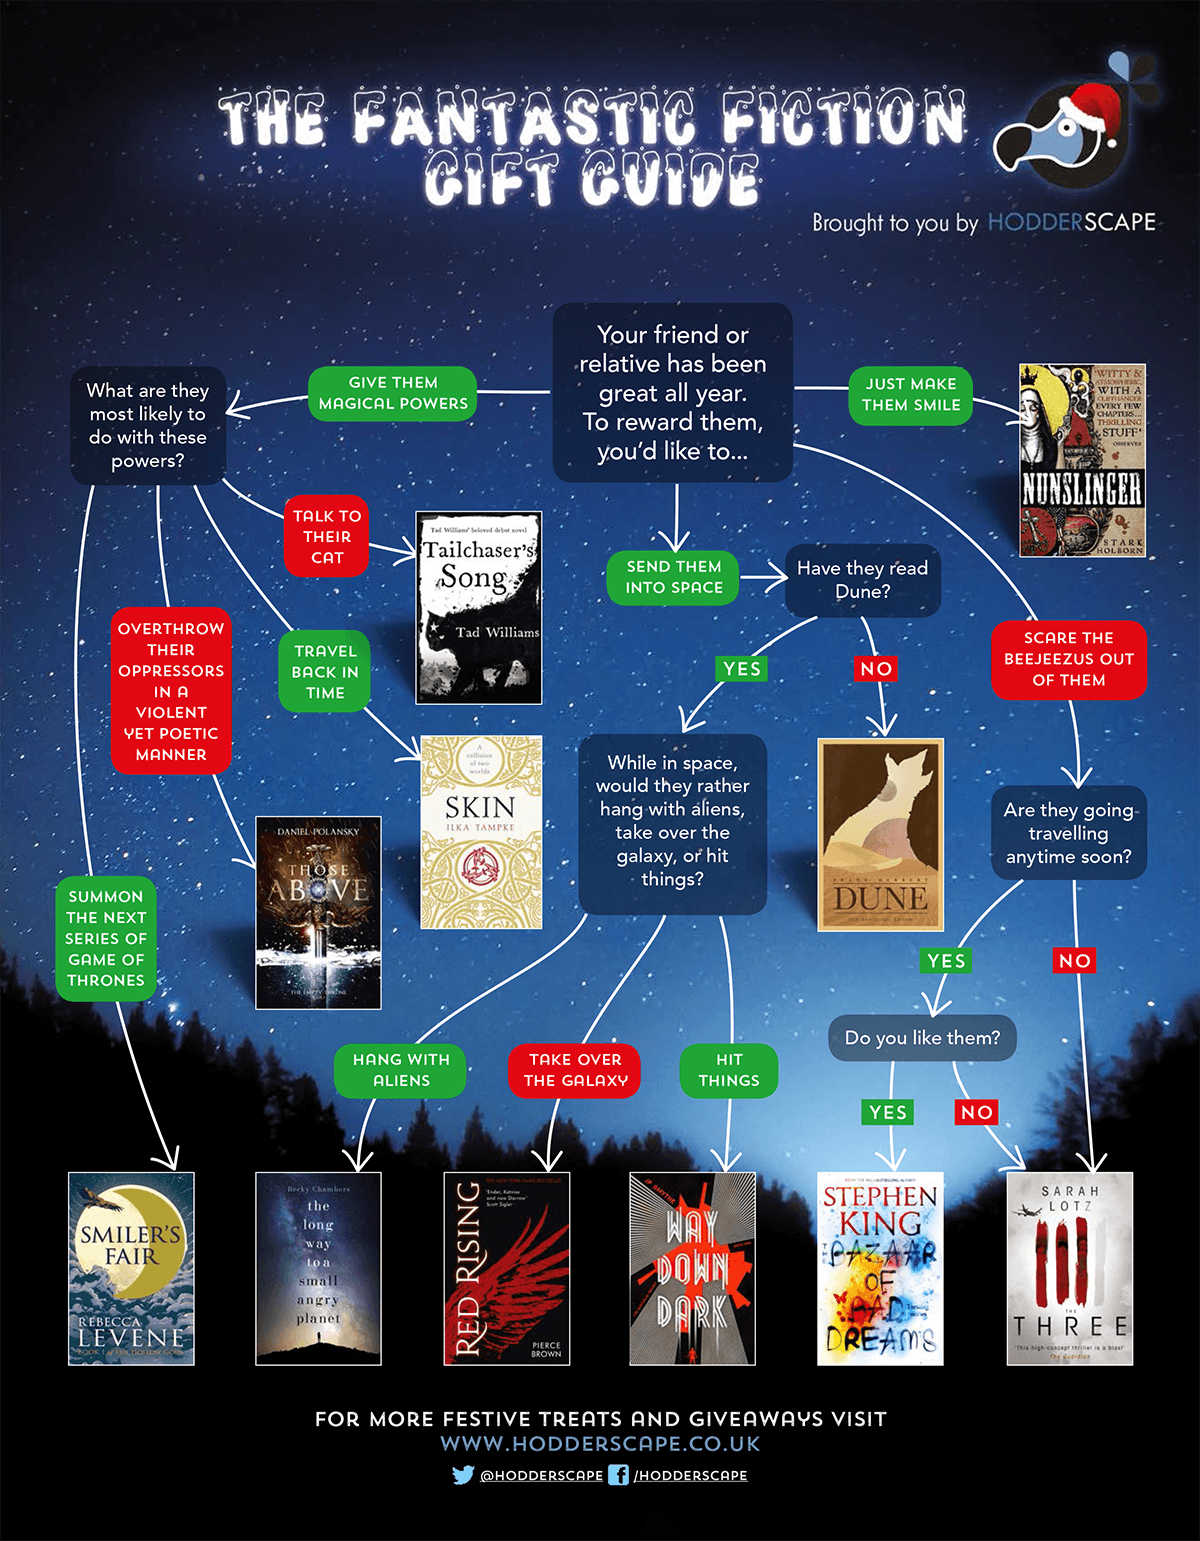 Hodderscape Christmas Gift Guide